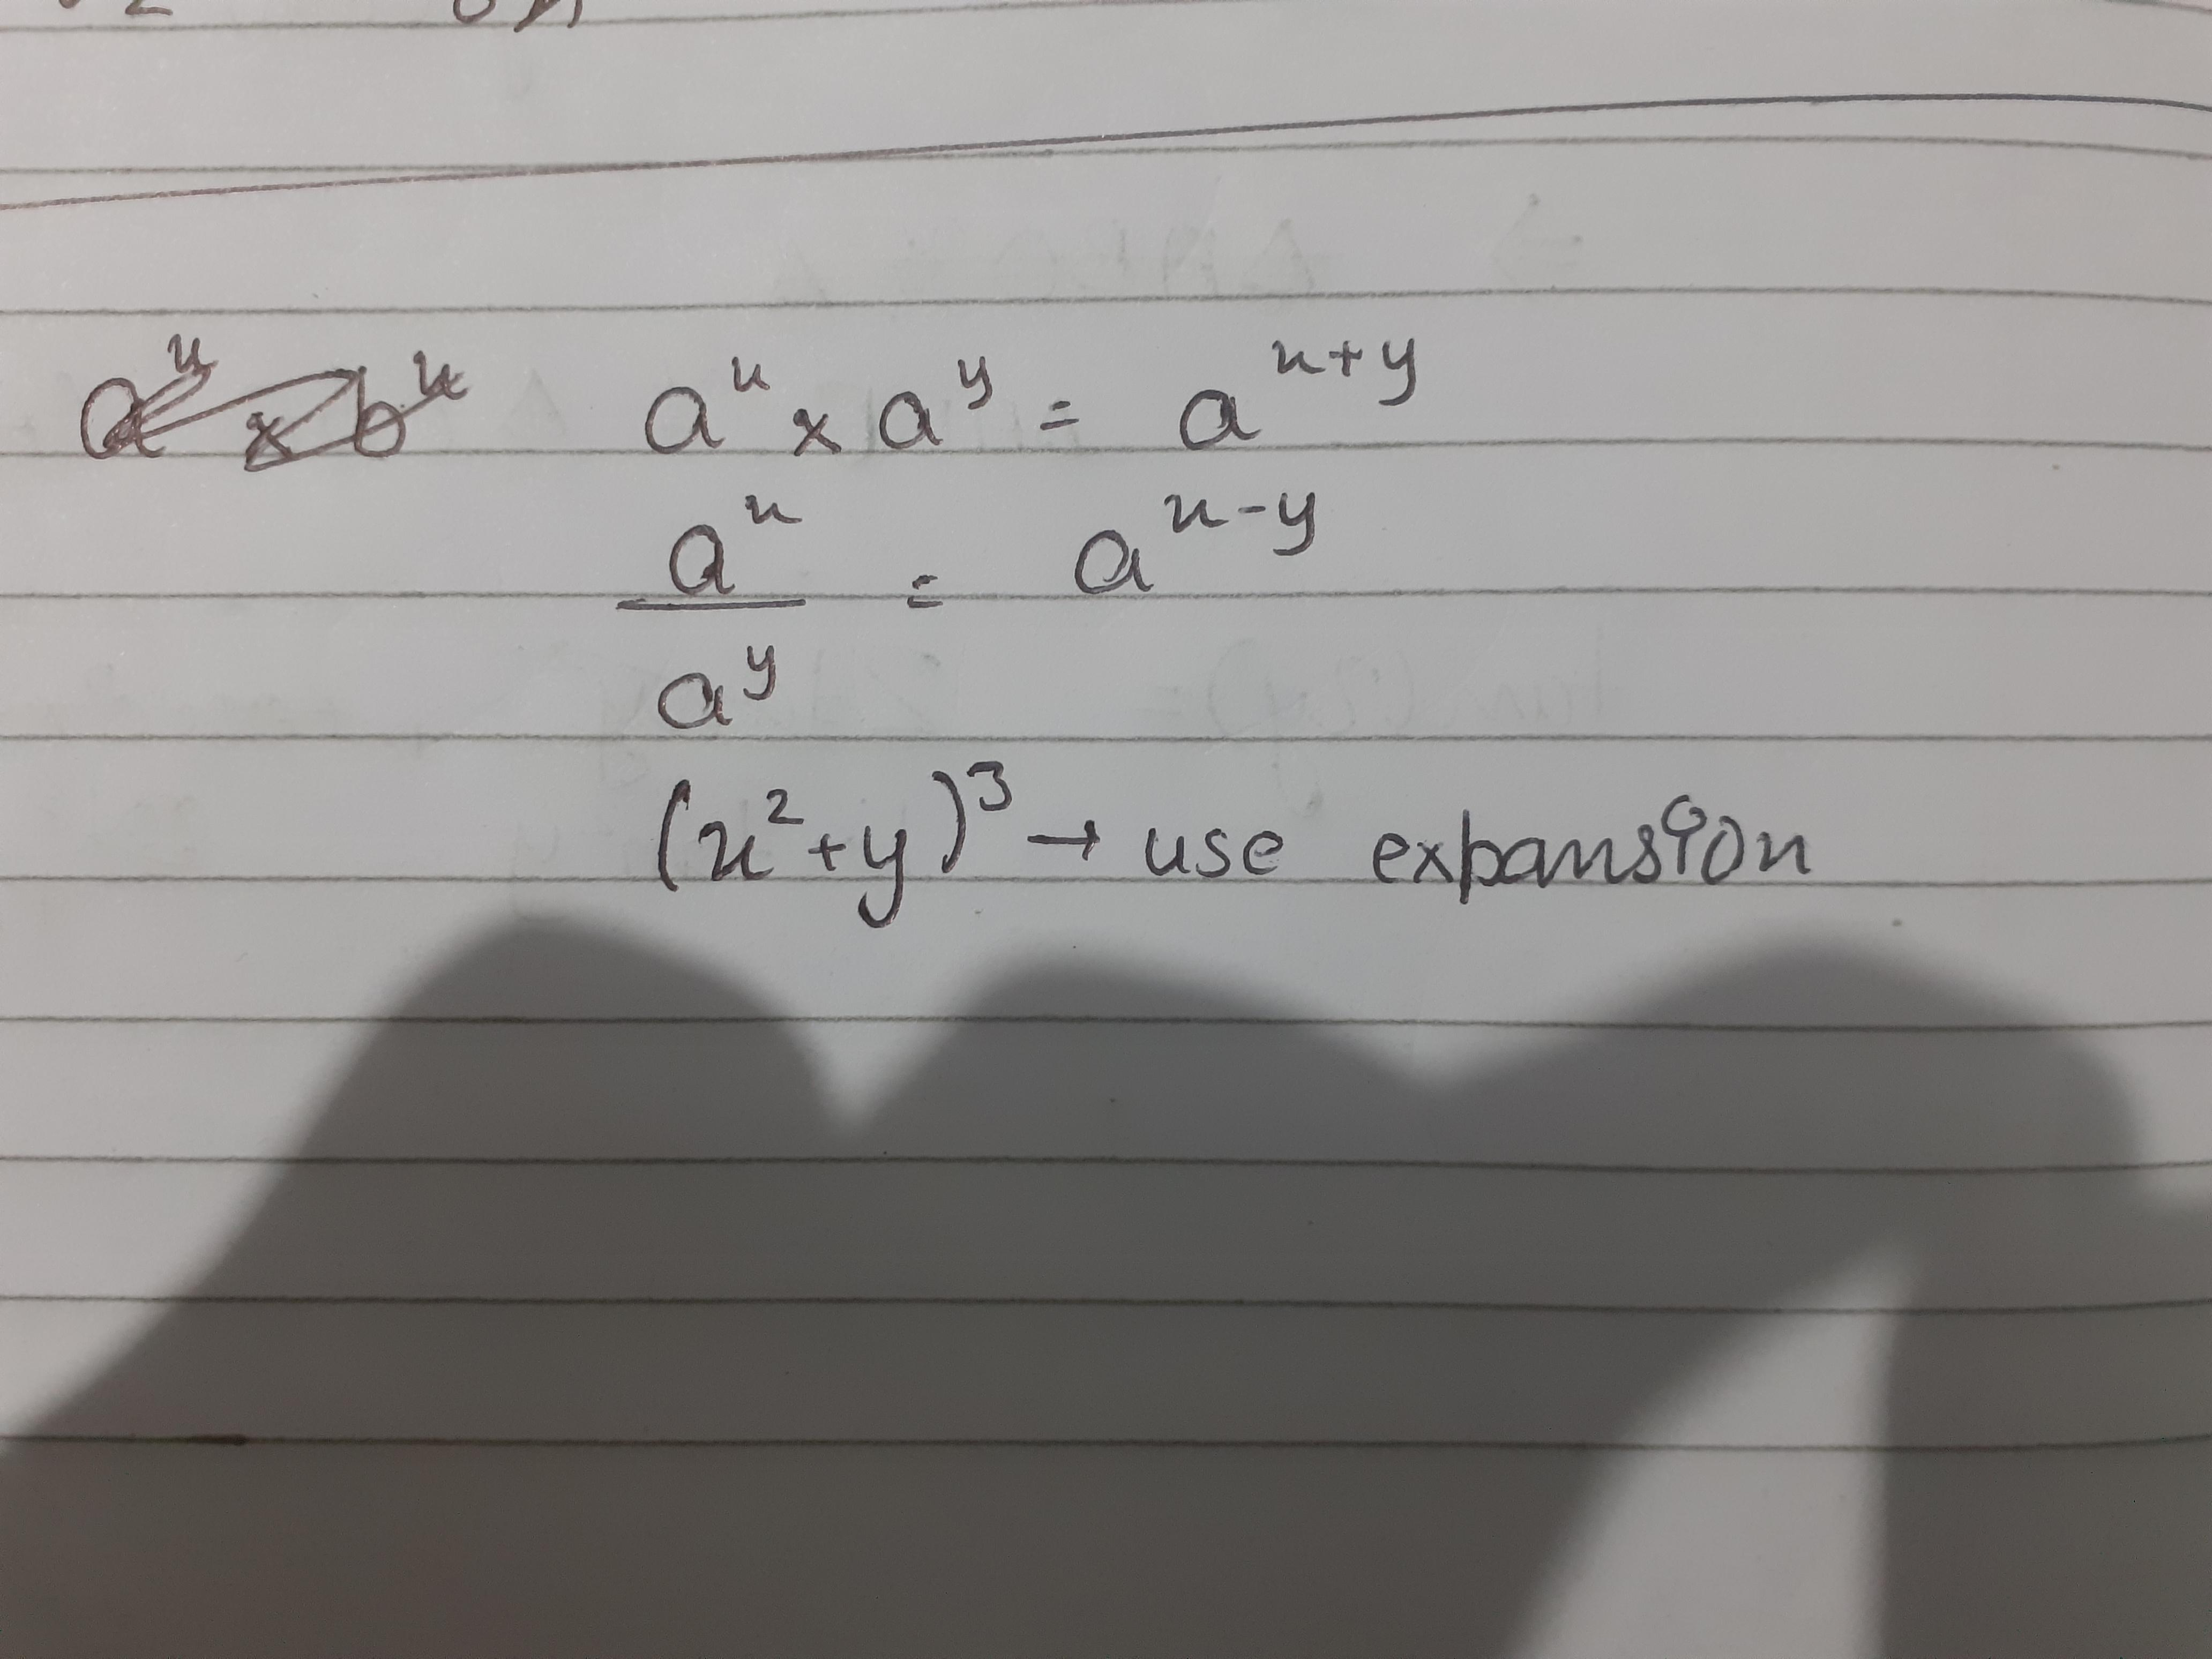 What If You Need To Multiply Or Divide Two Expressions